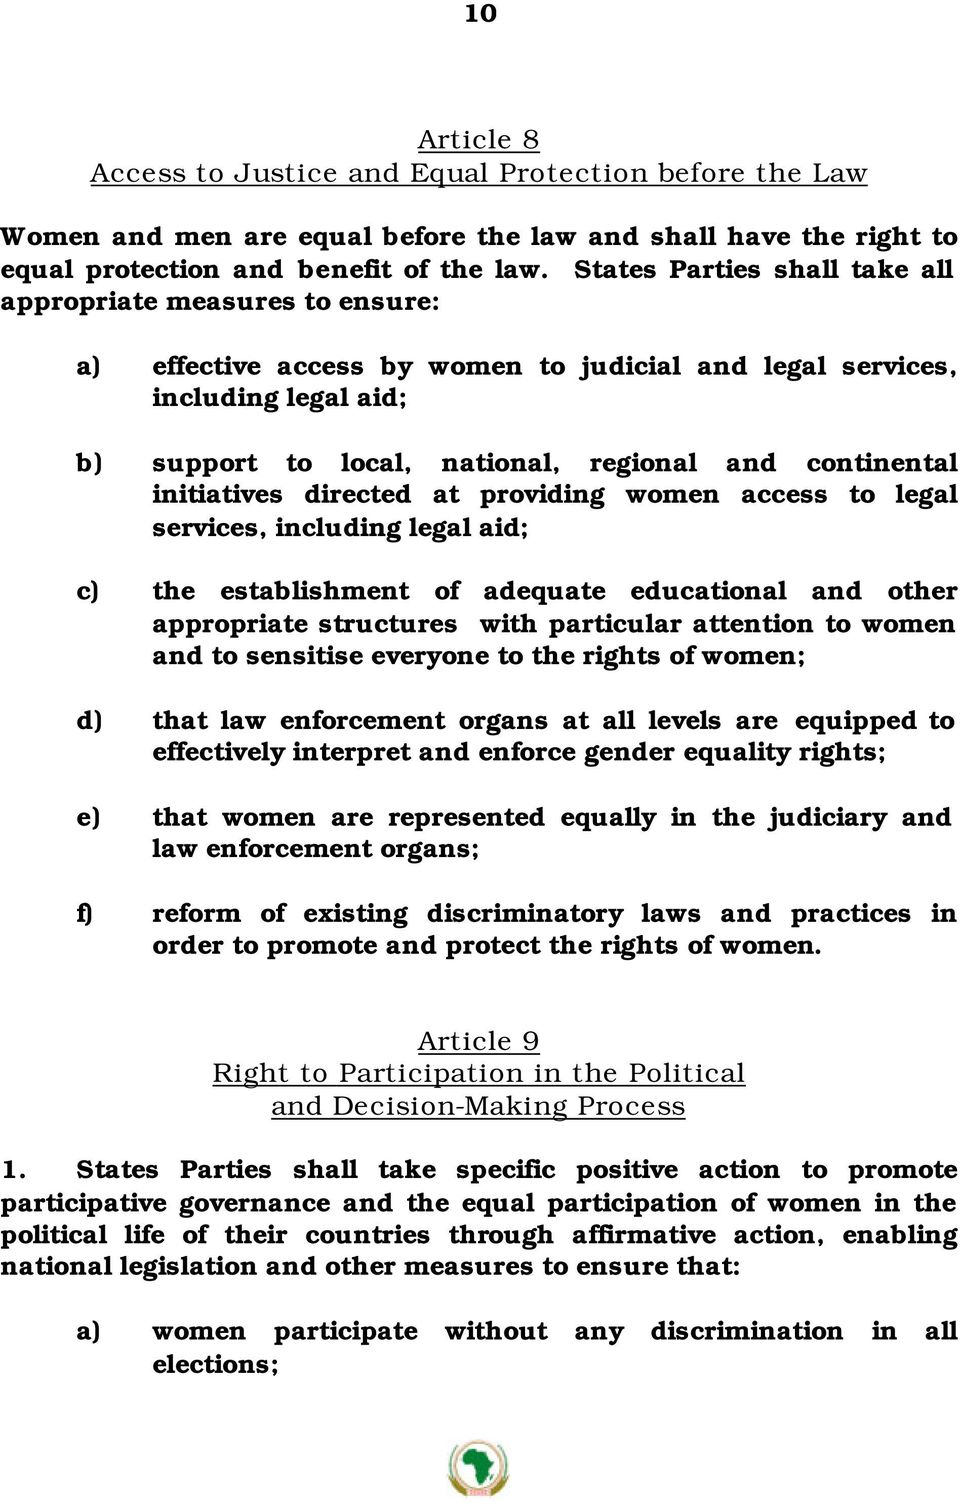 initiatives directed at providing women access to legal services, including legal aid; c) the establishment of adequate educational and other appropriate structures with particular attention to women